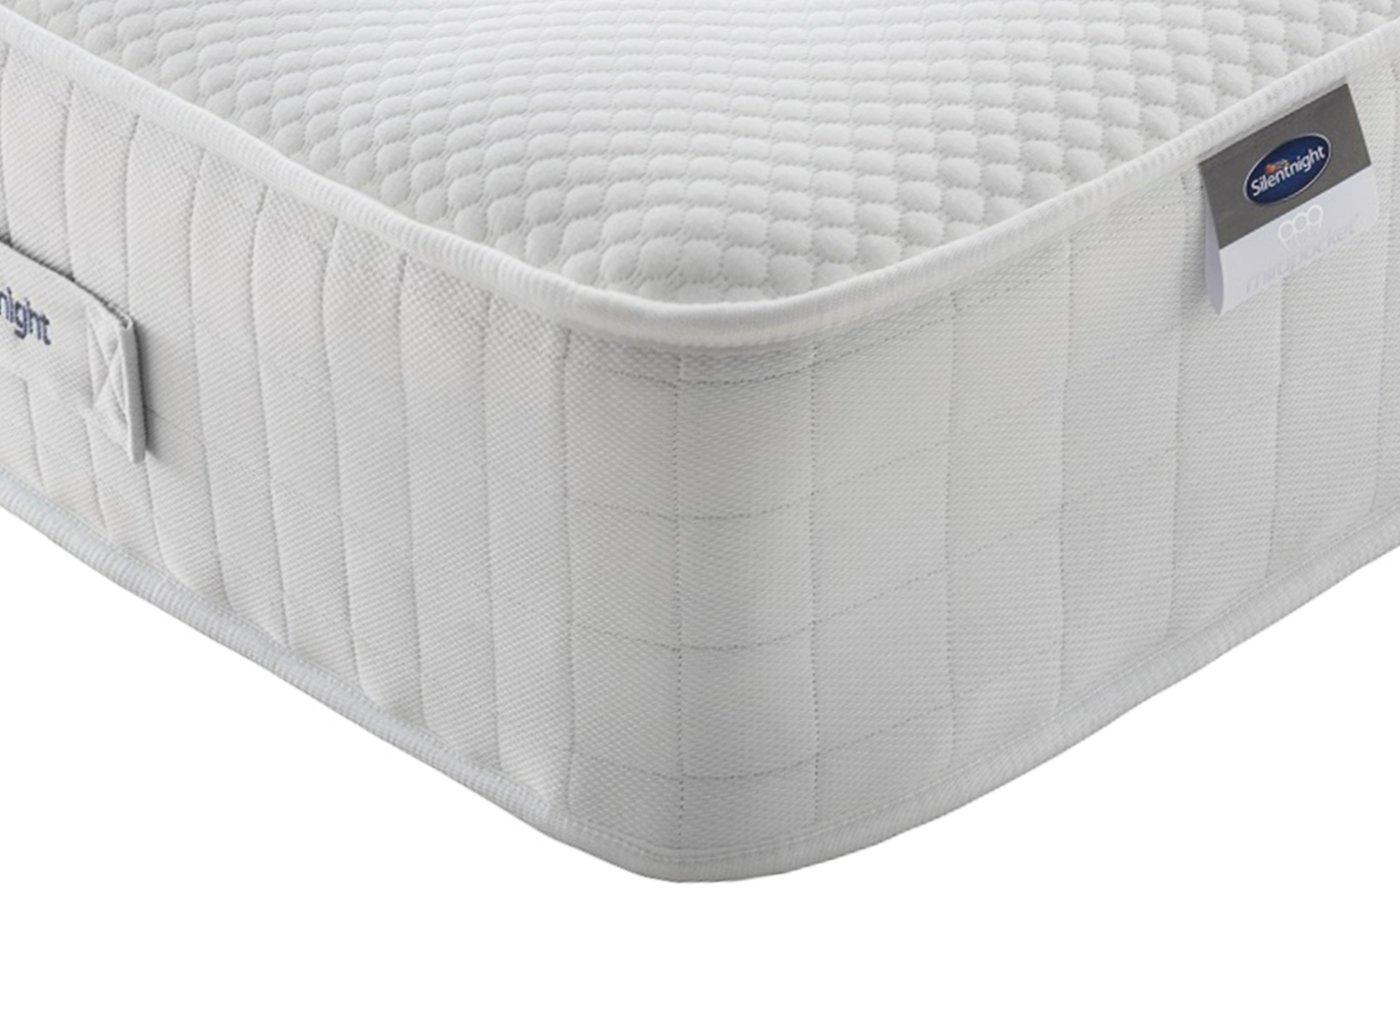 Silentnight Cromwell Mirapocket Mattress